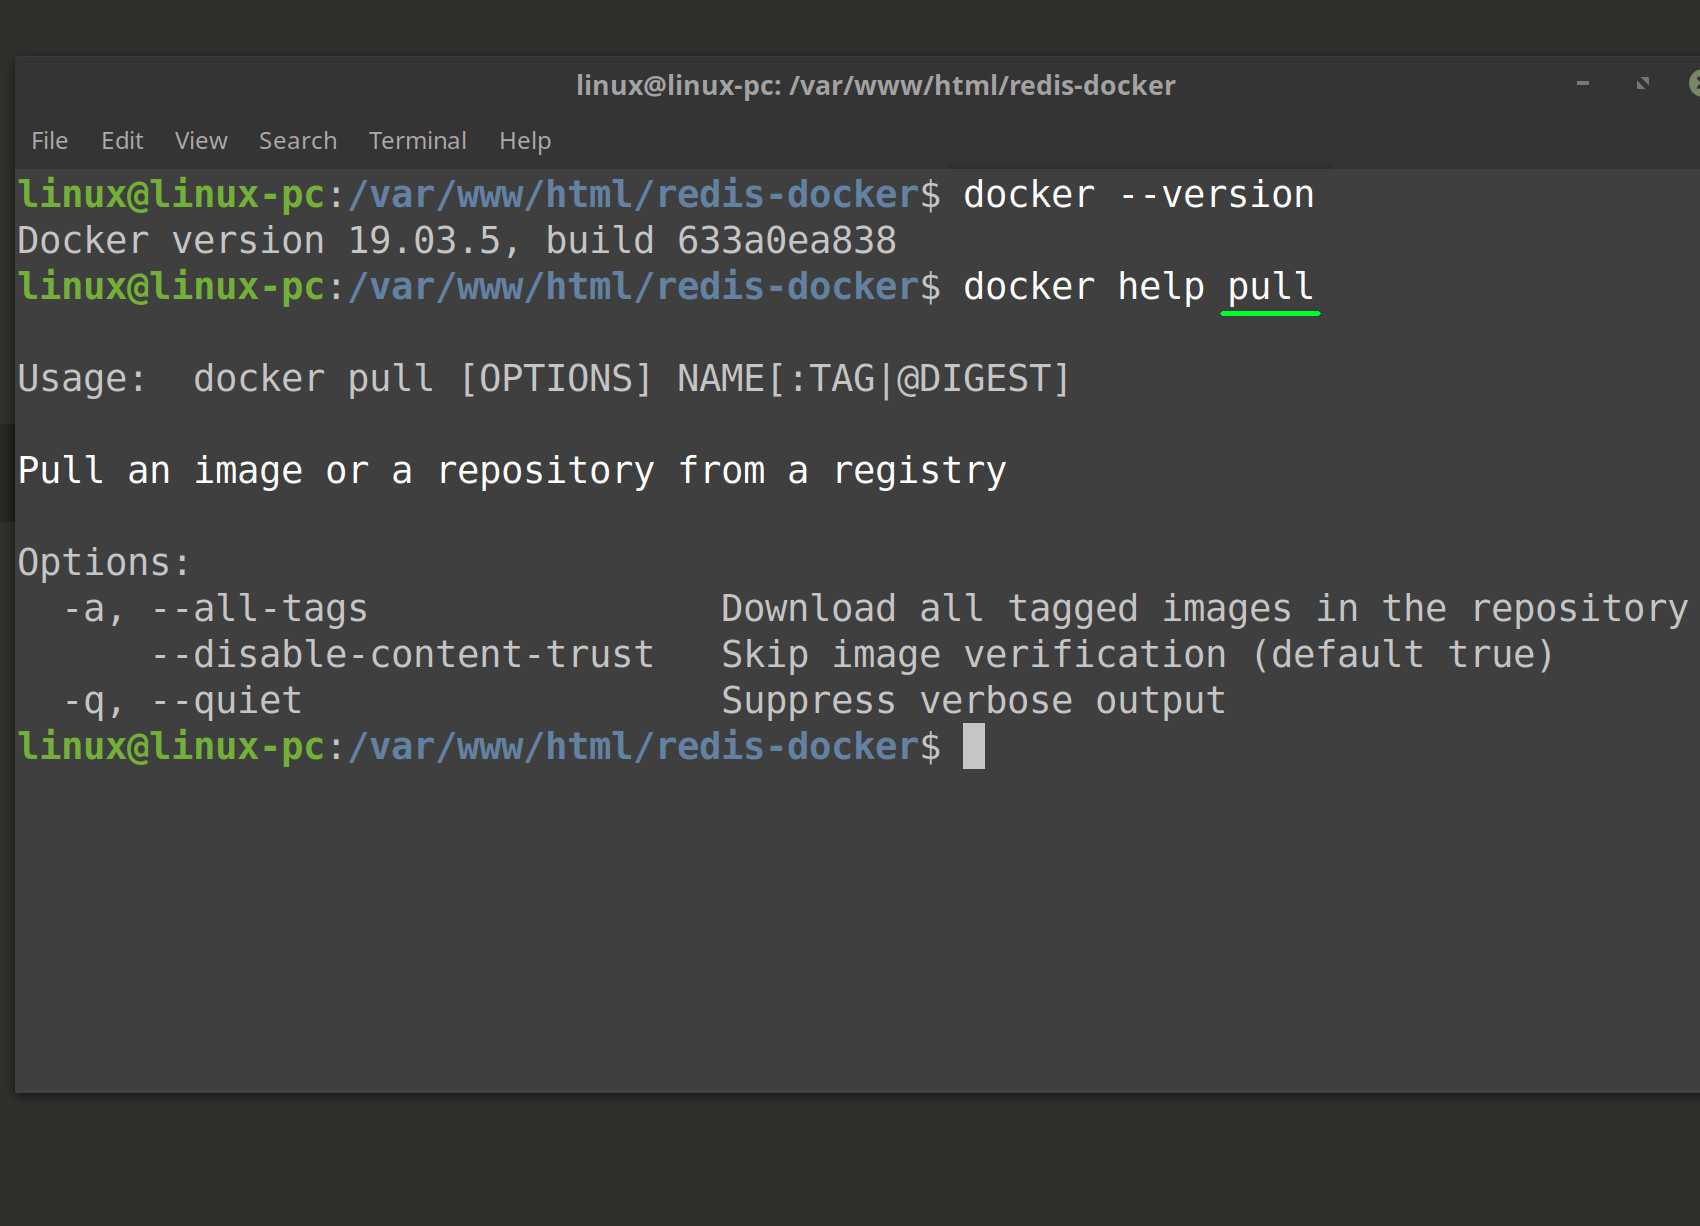 Screenshot of Docker --version and help commands in a Linux terminal